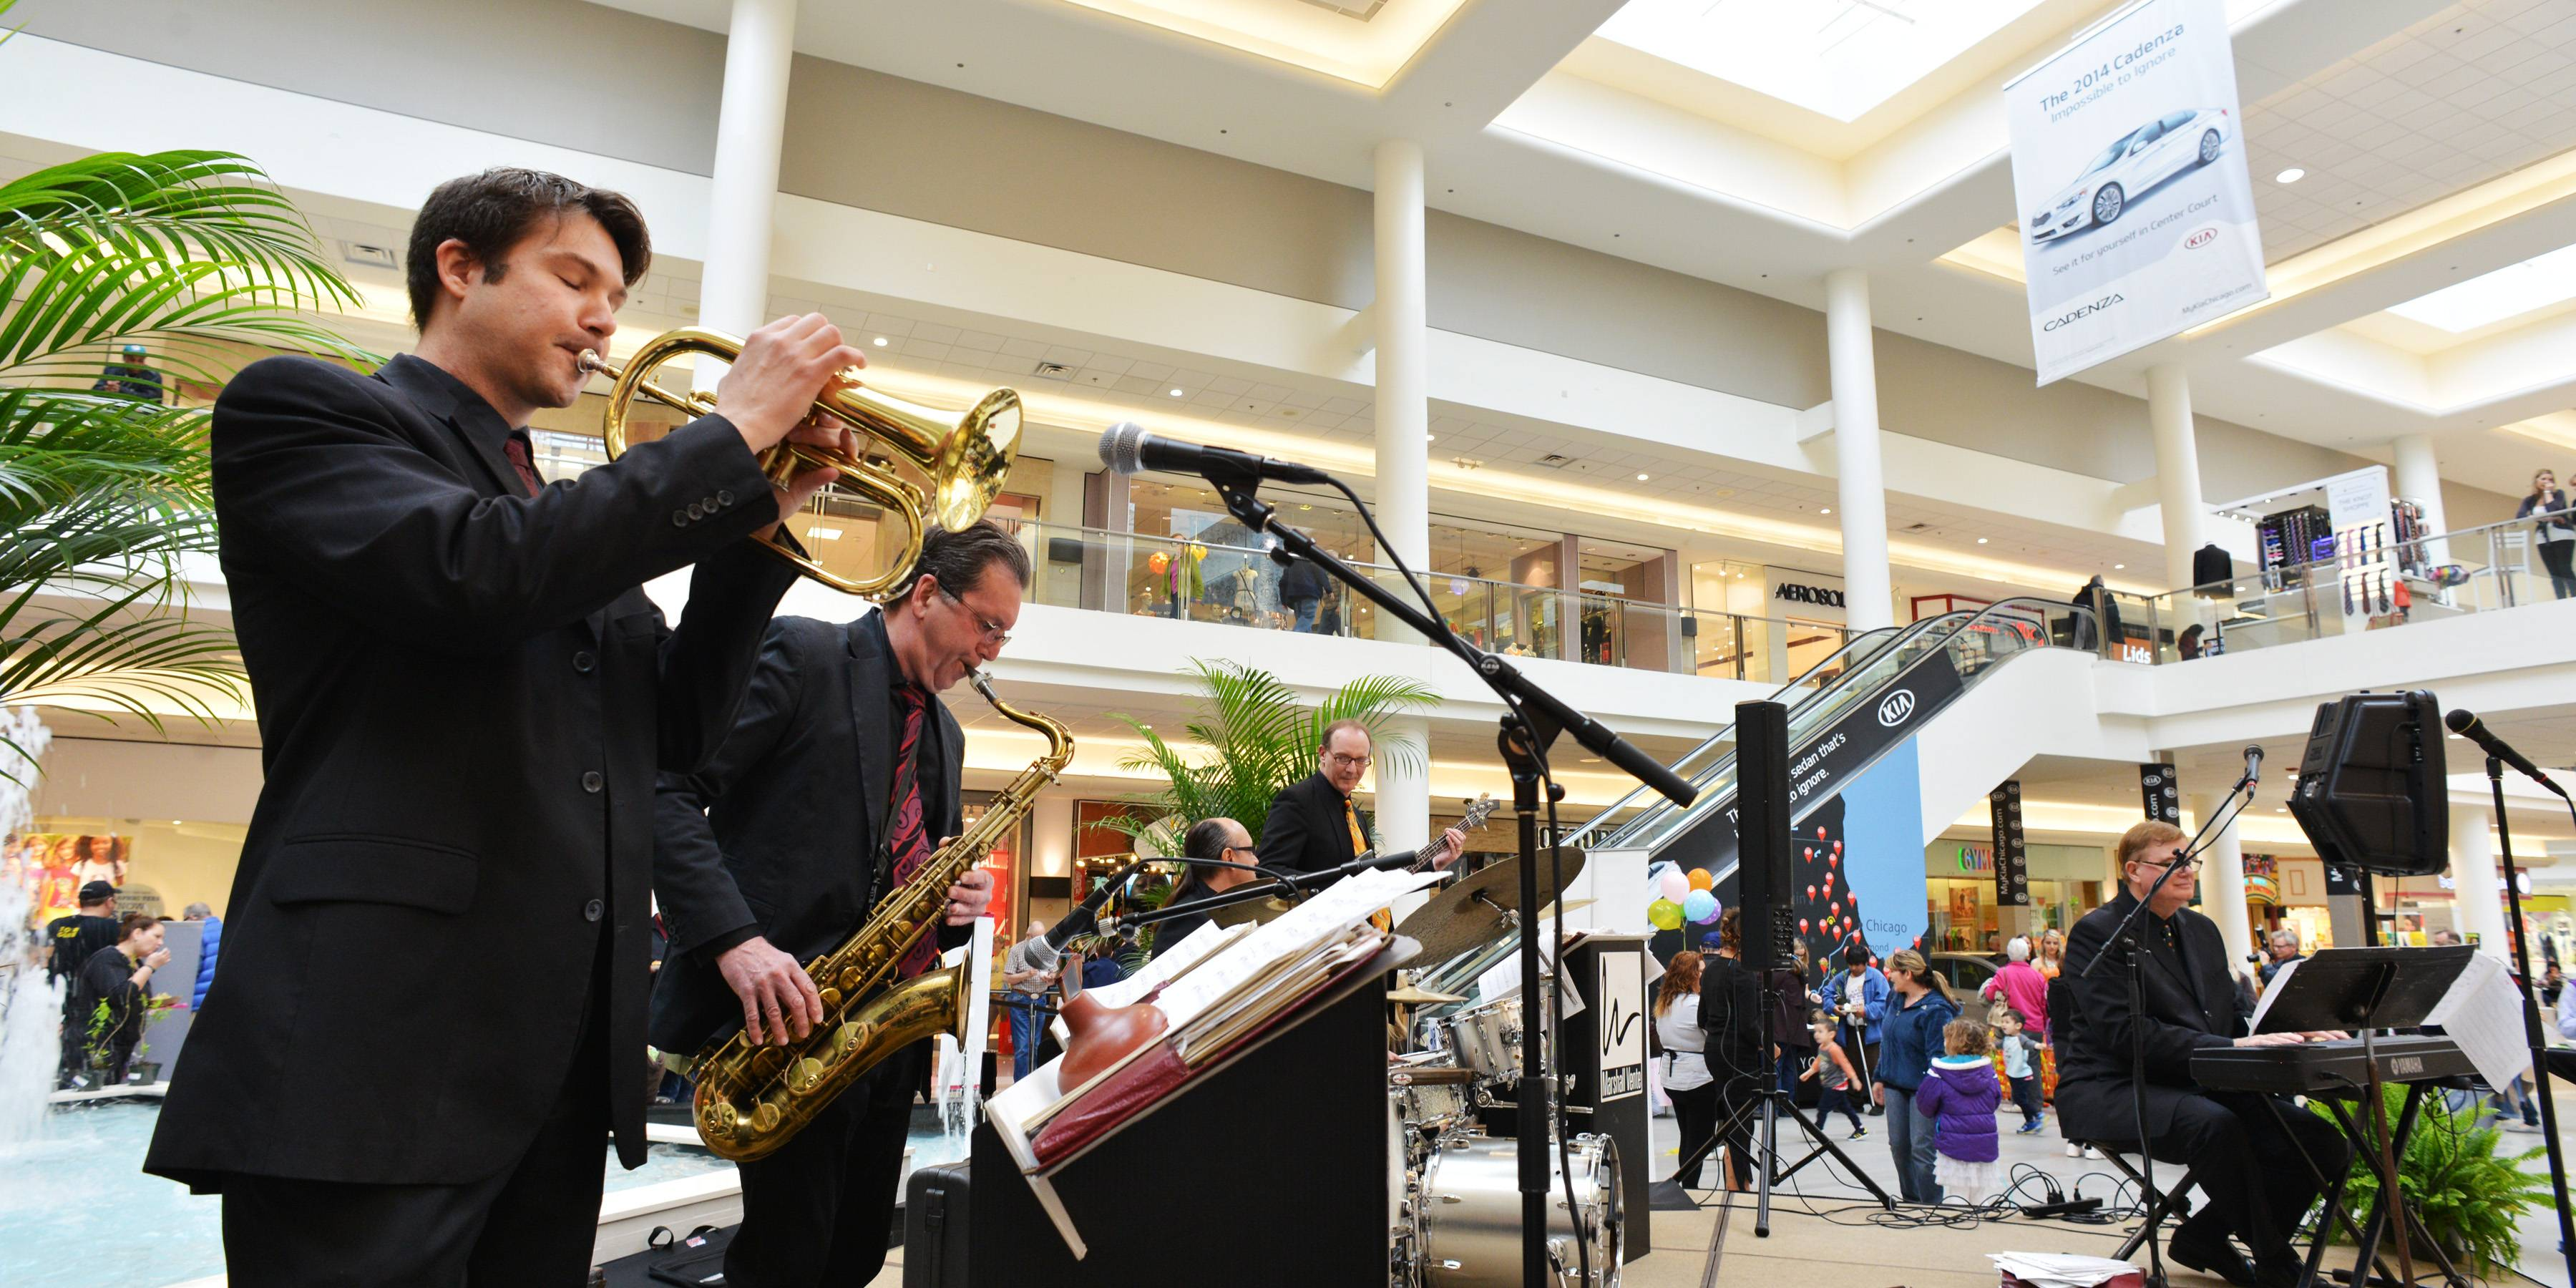 A live band, food samples from area restaurants and giveaways were featured at a ribbon-cutting Friday for a $20 million renovation project at Yorktown Center.